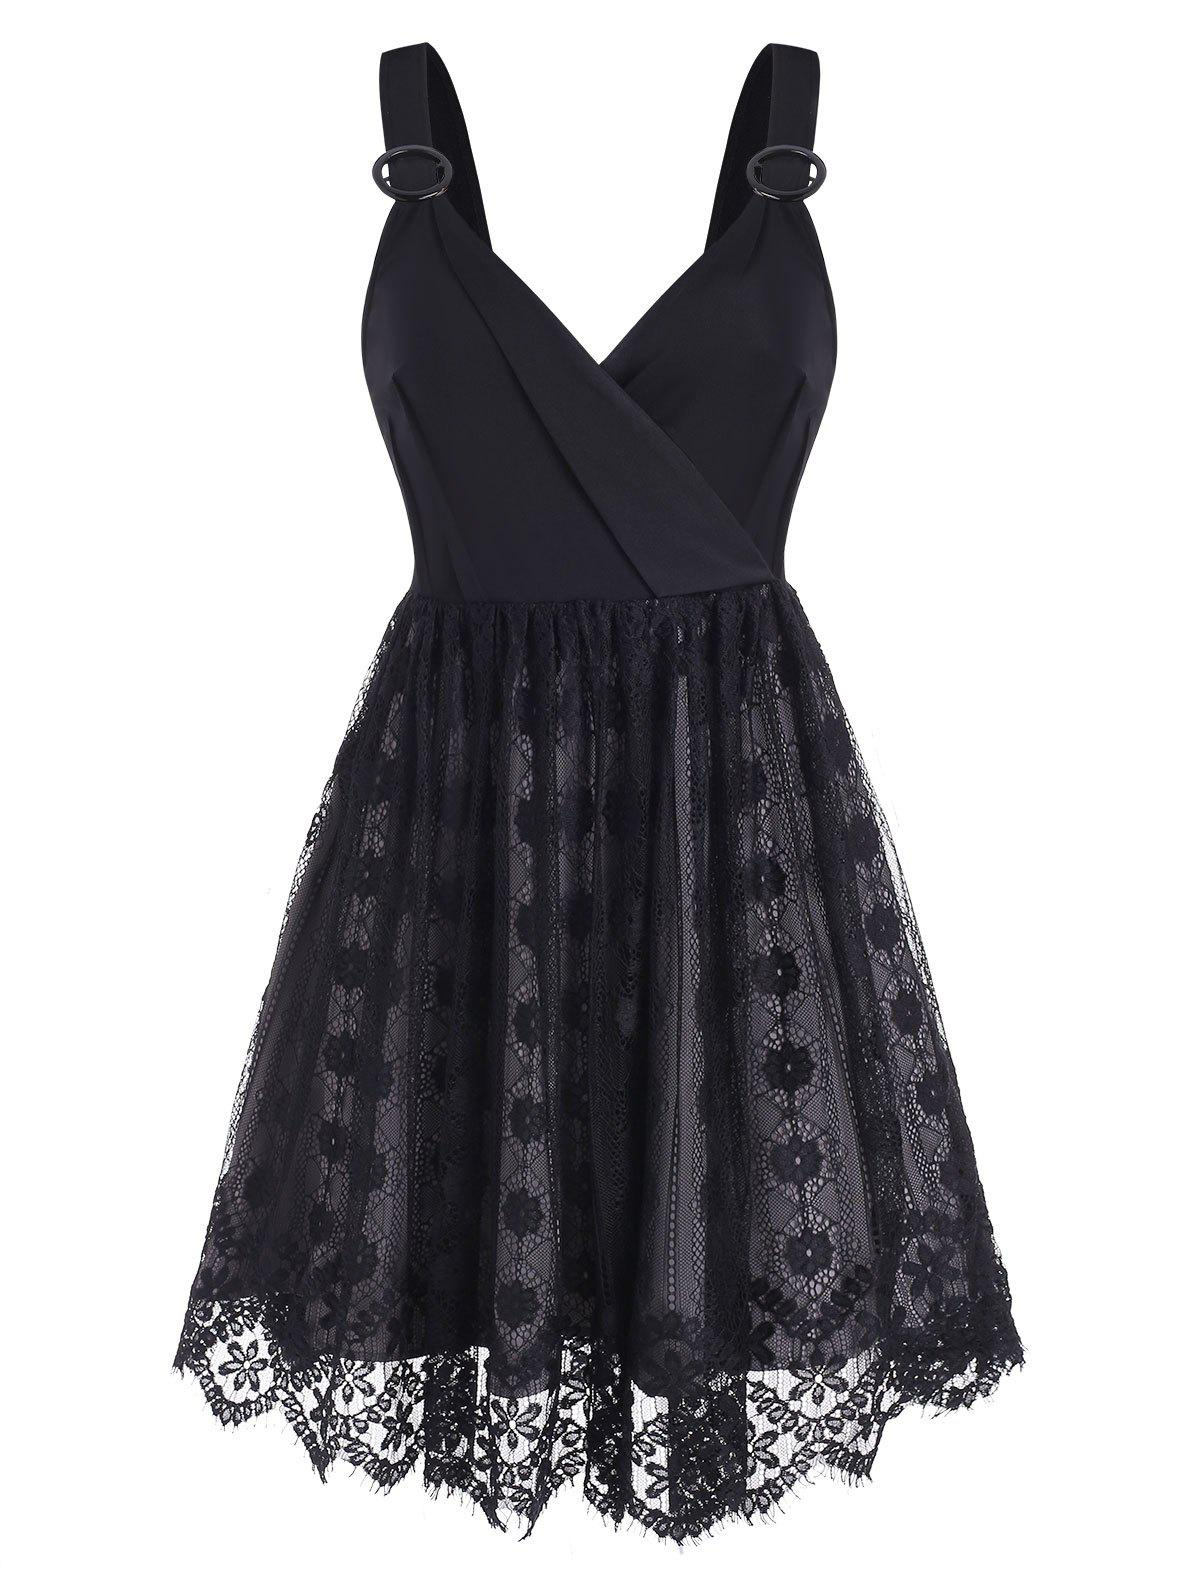 O Rings Surplice Lace Dress - BLACK 2XL